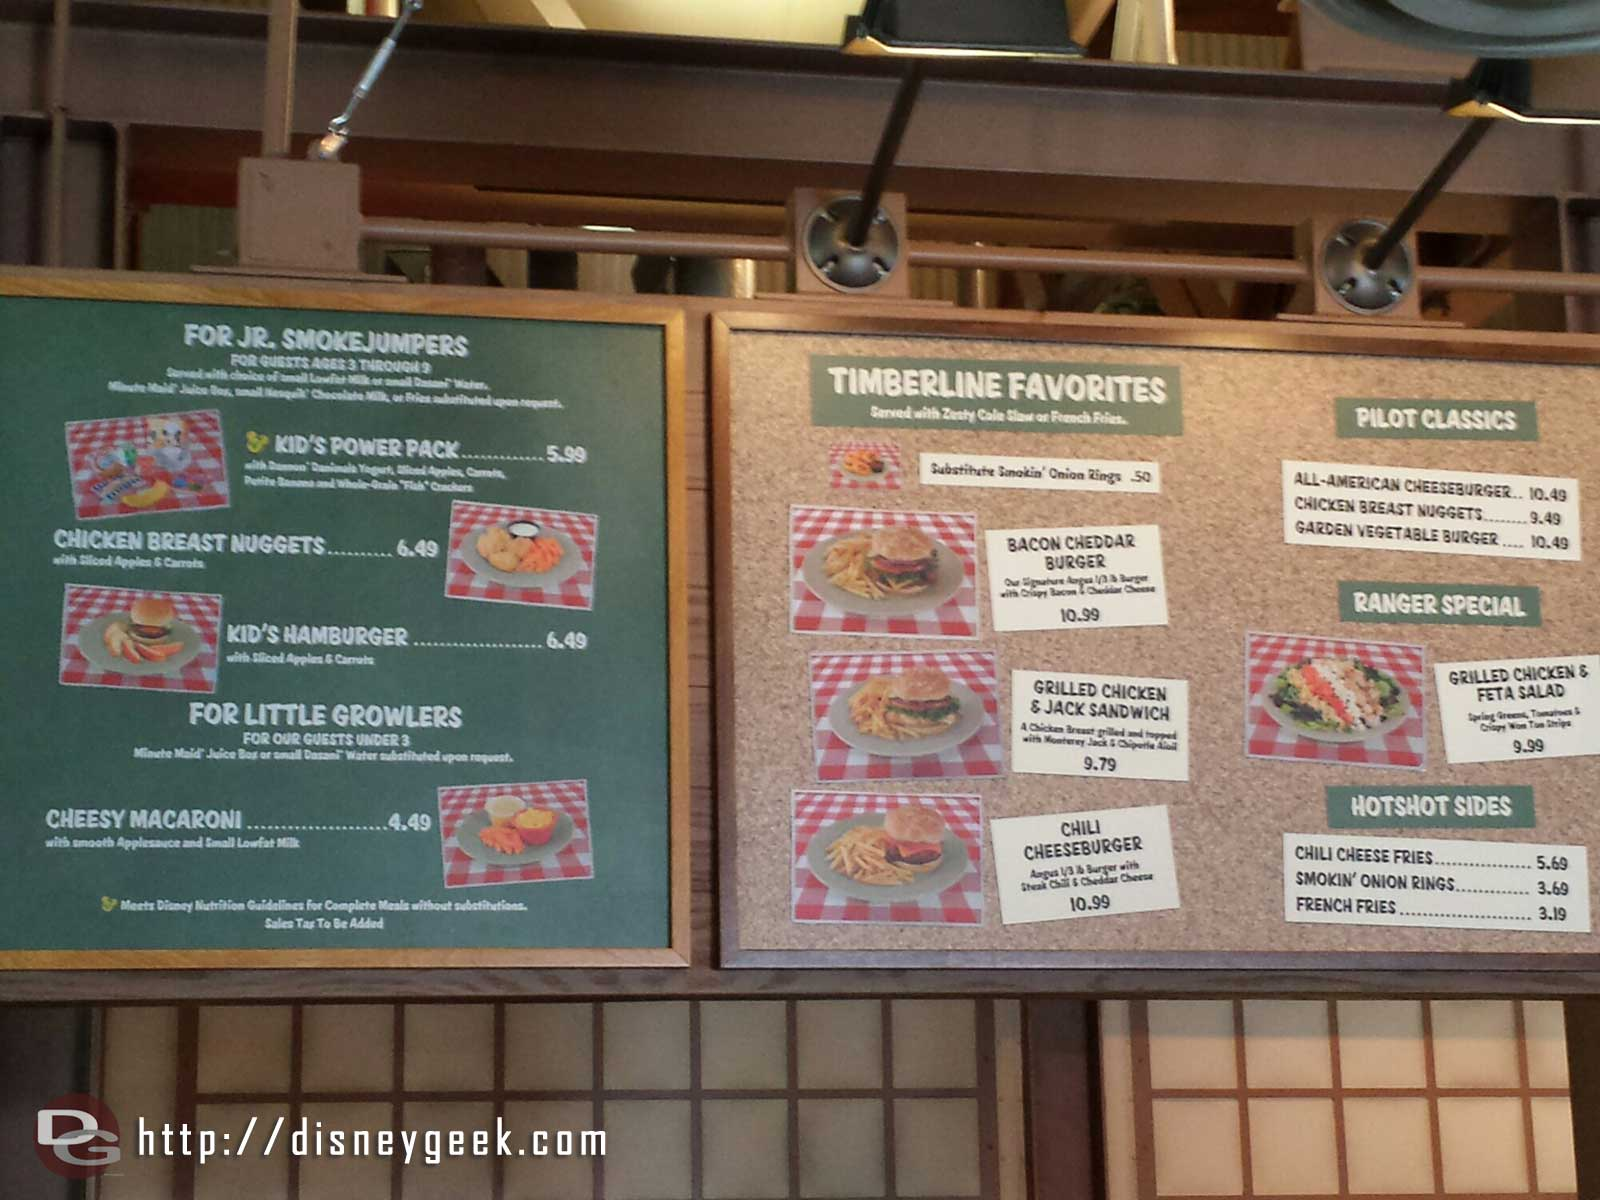 Smokejumpers Grill menu at Disney California Adventure